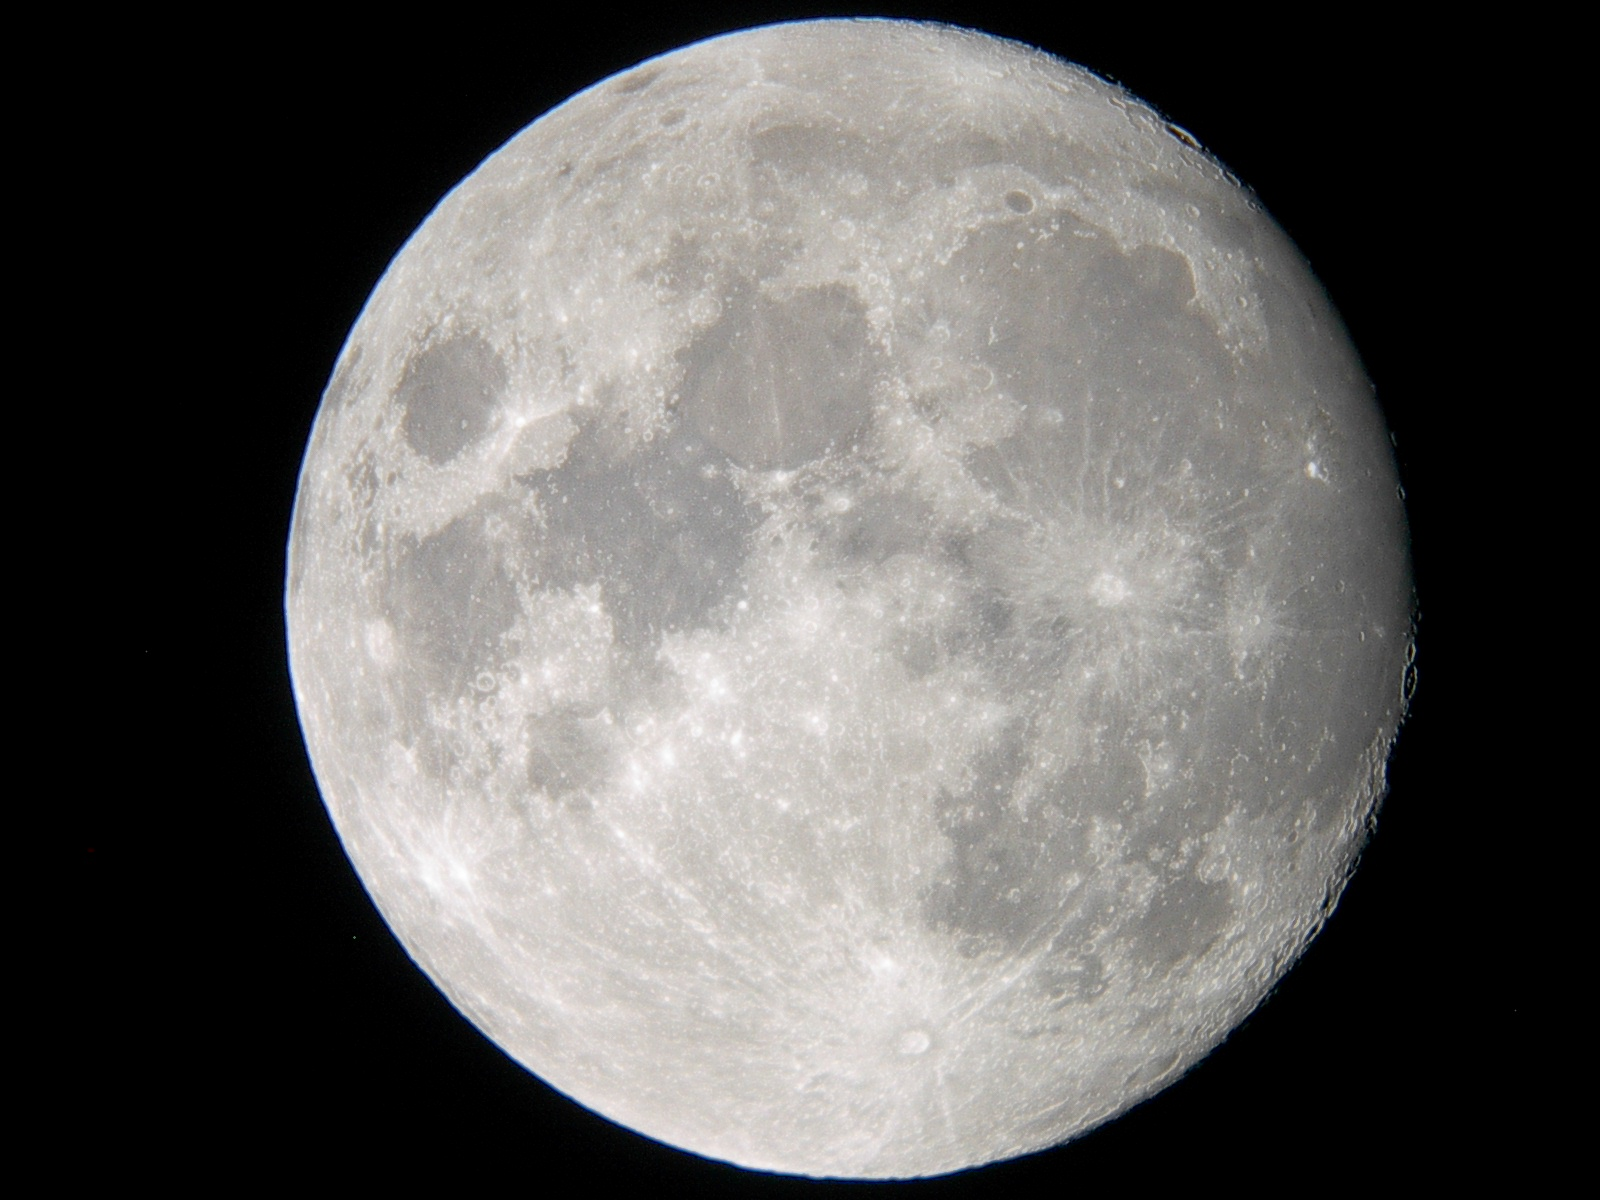 ... moon flashes transient lunar phenomena could be linked to solar cycle